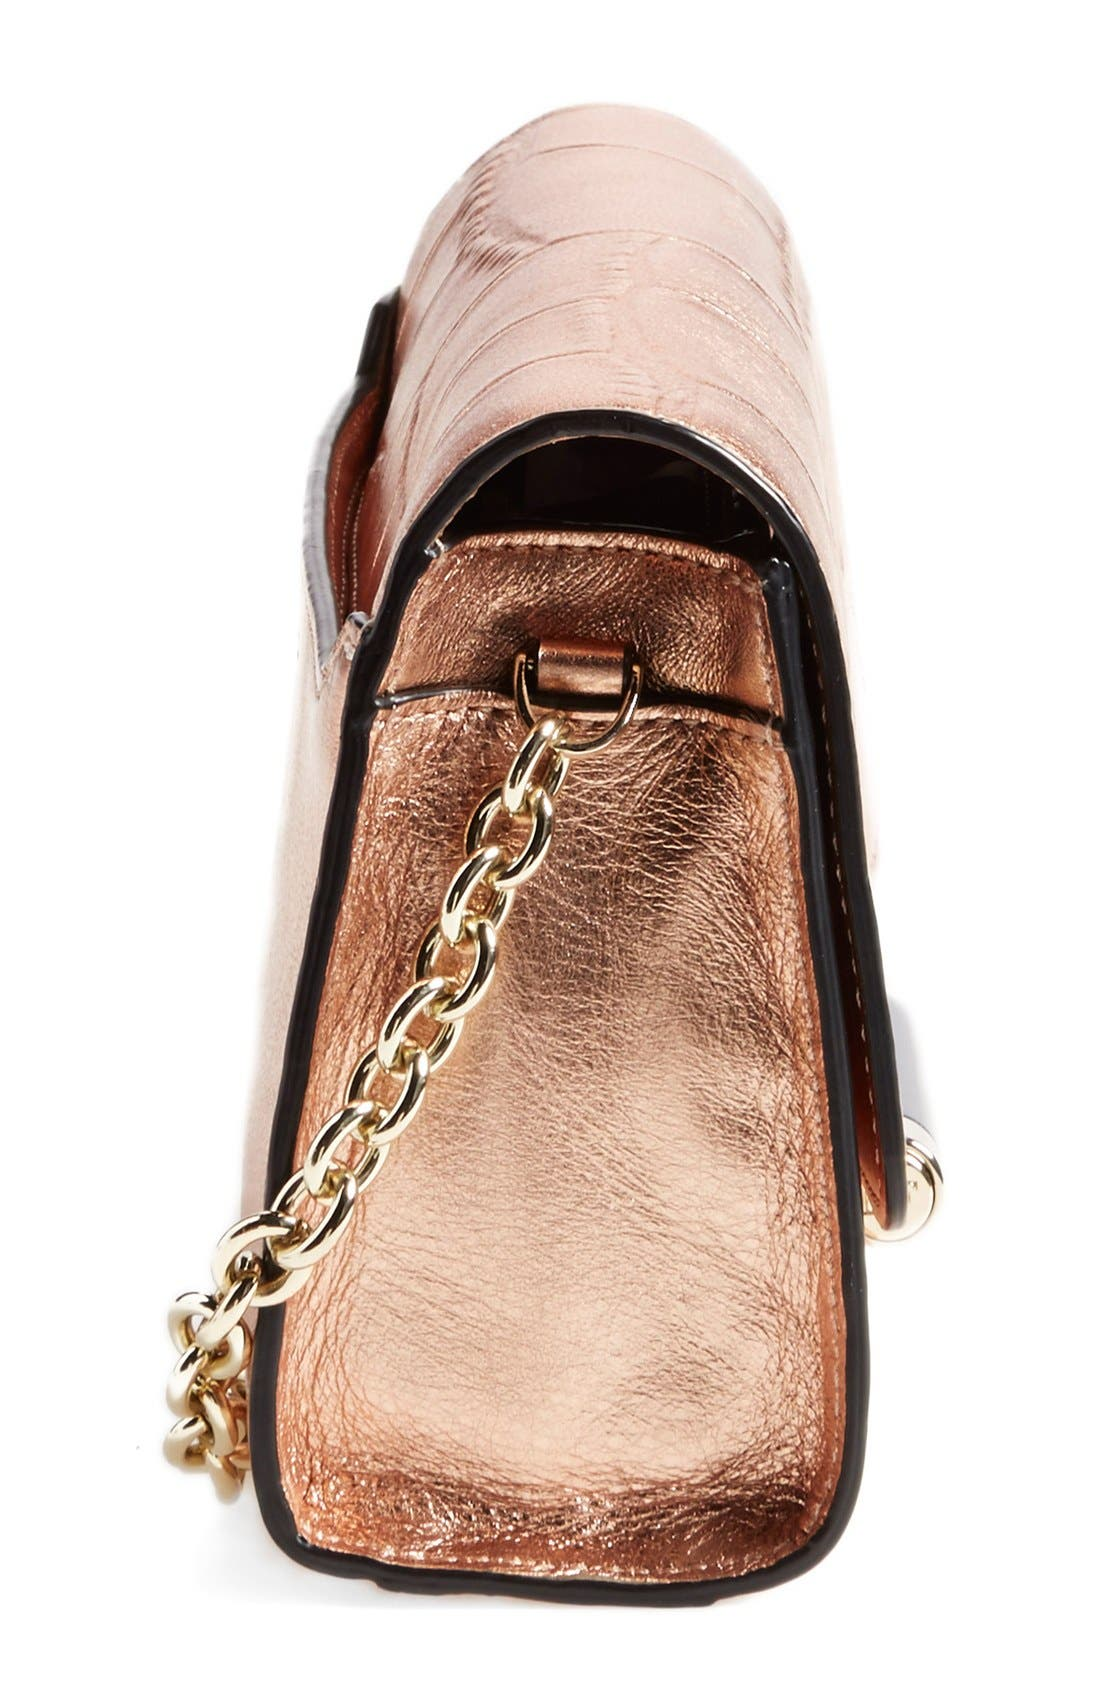 'Micro Mini 440' Croc Embossed Metallic Leather Crossbody Bag,                             Alternate thumbnail 5, color,                             711